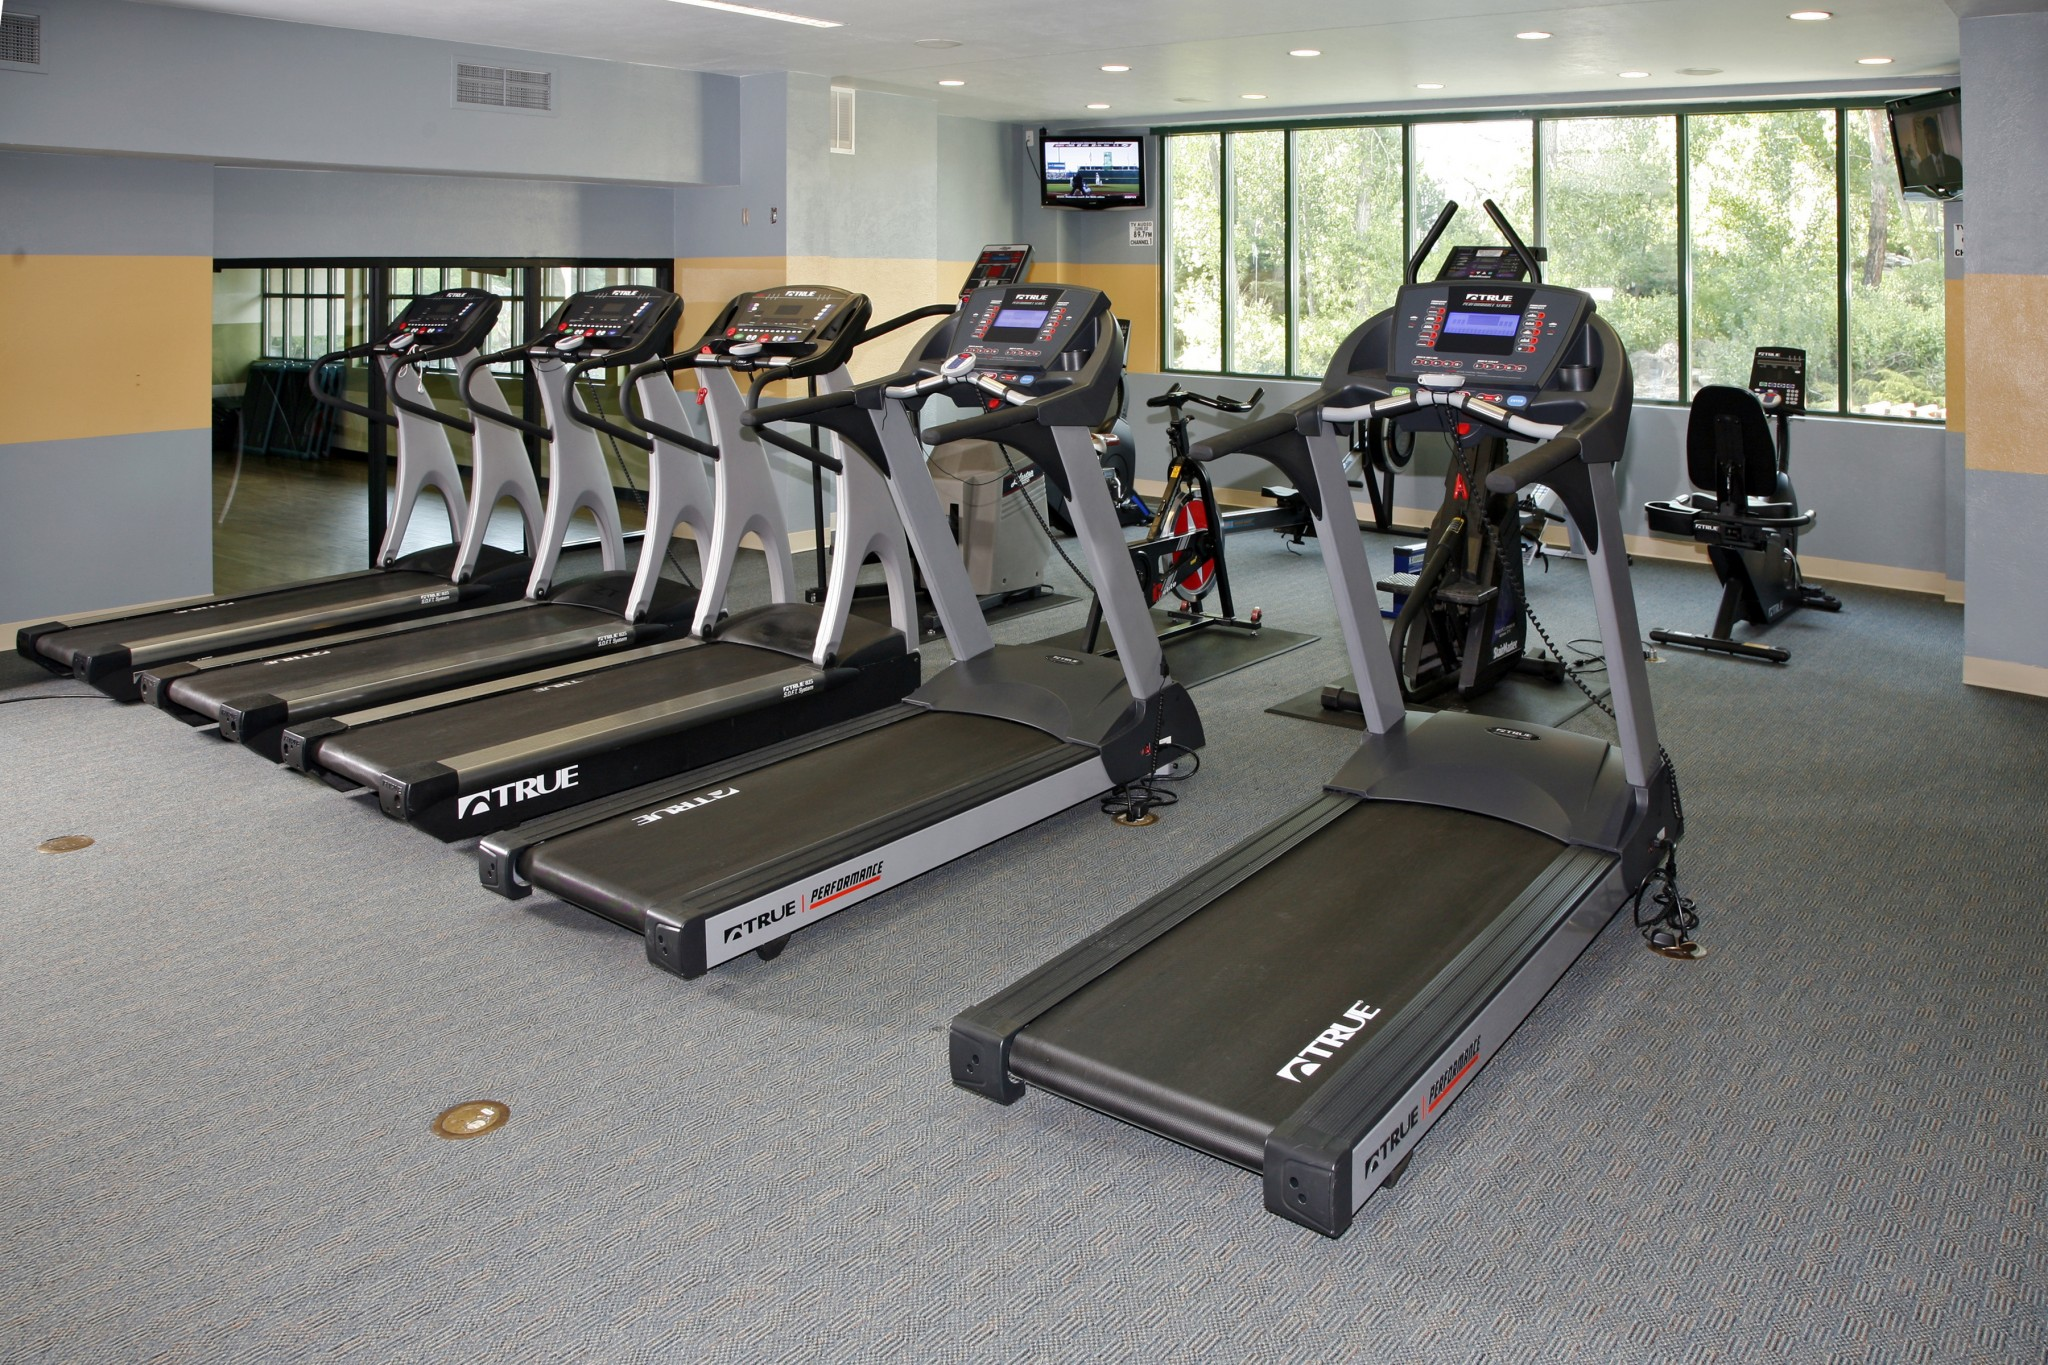 Fitness center with cardio equipment.